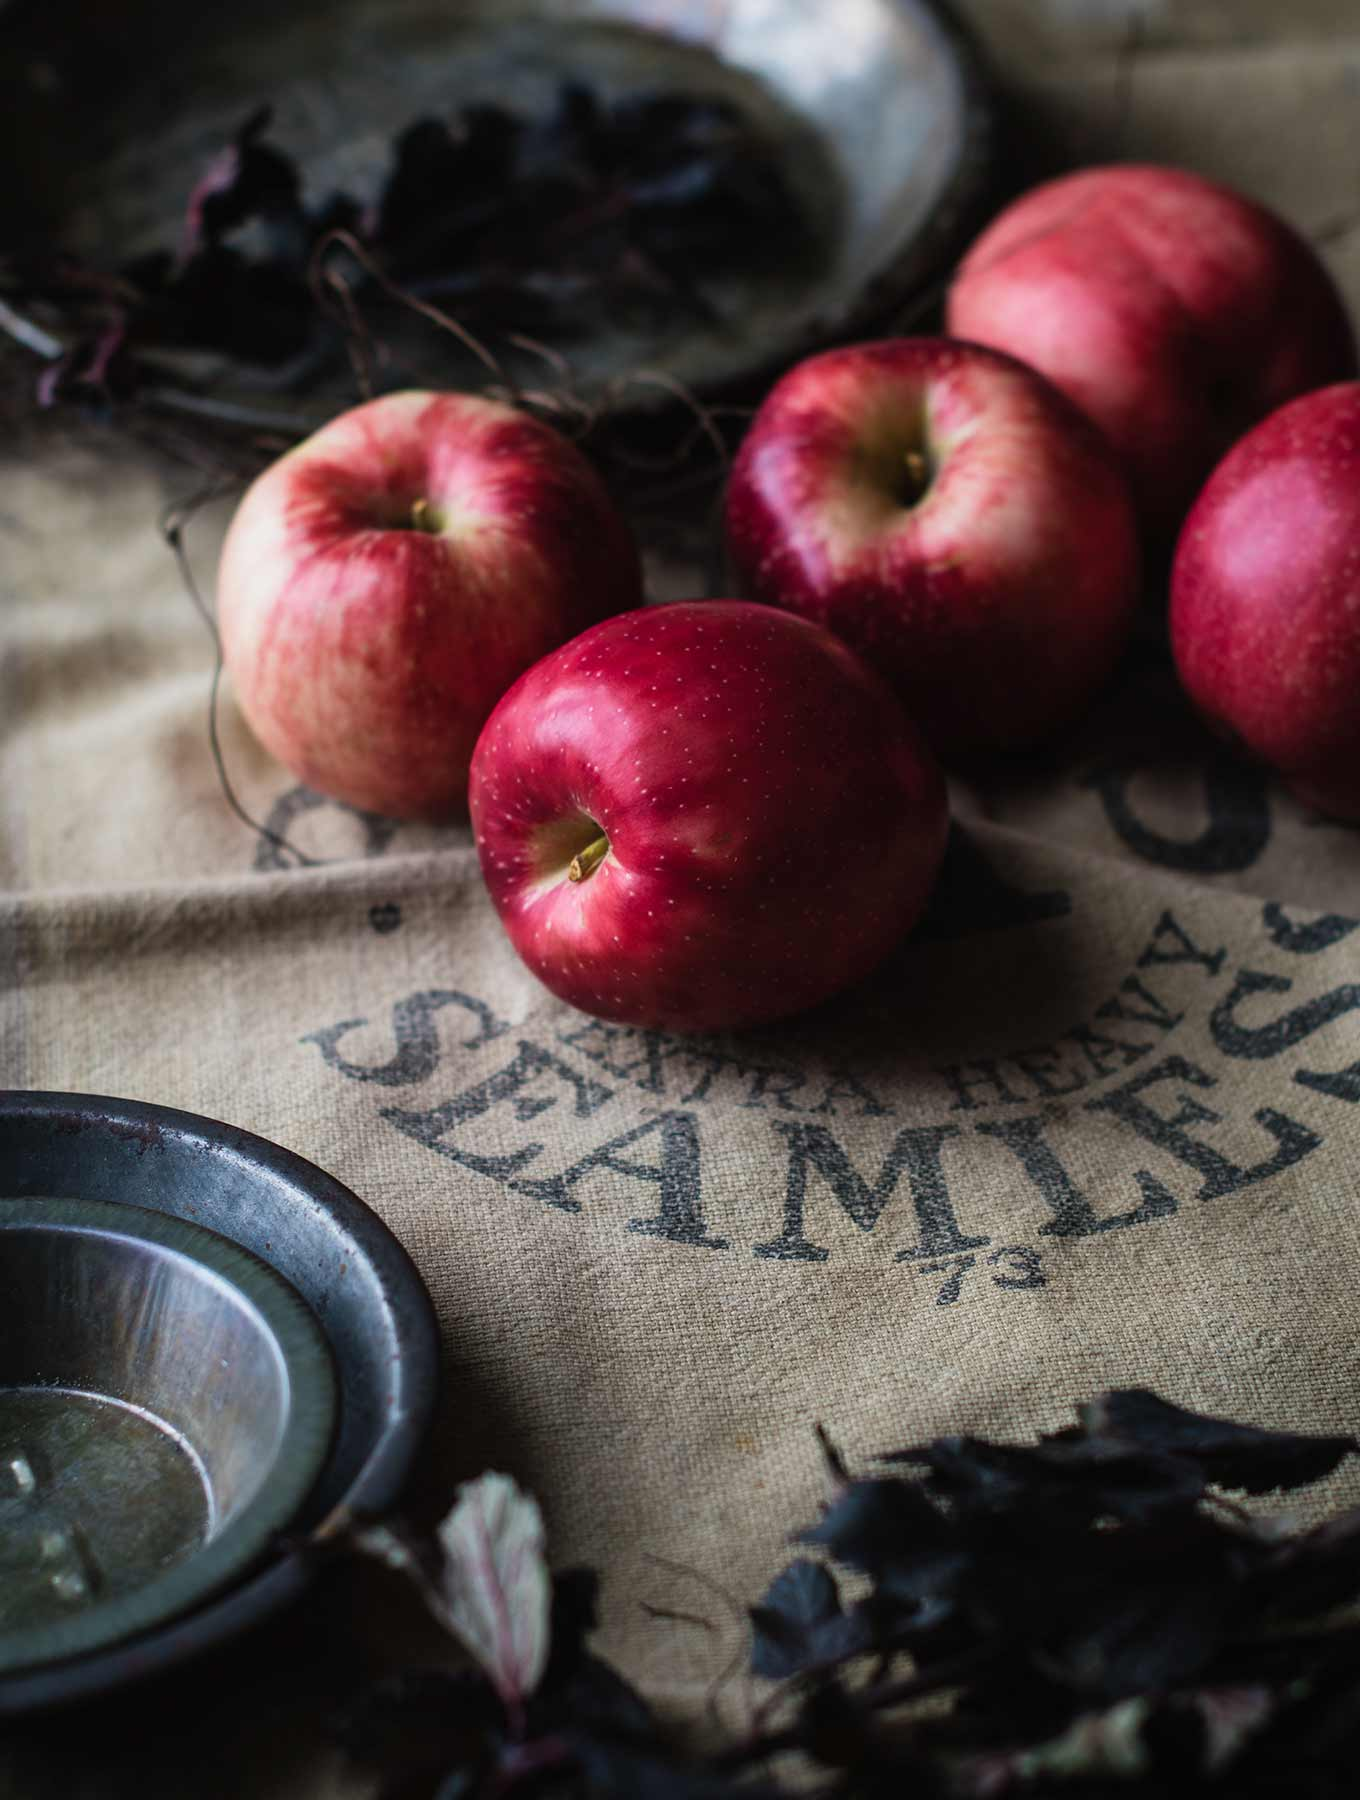 Apples on a burlap sack